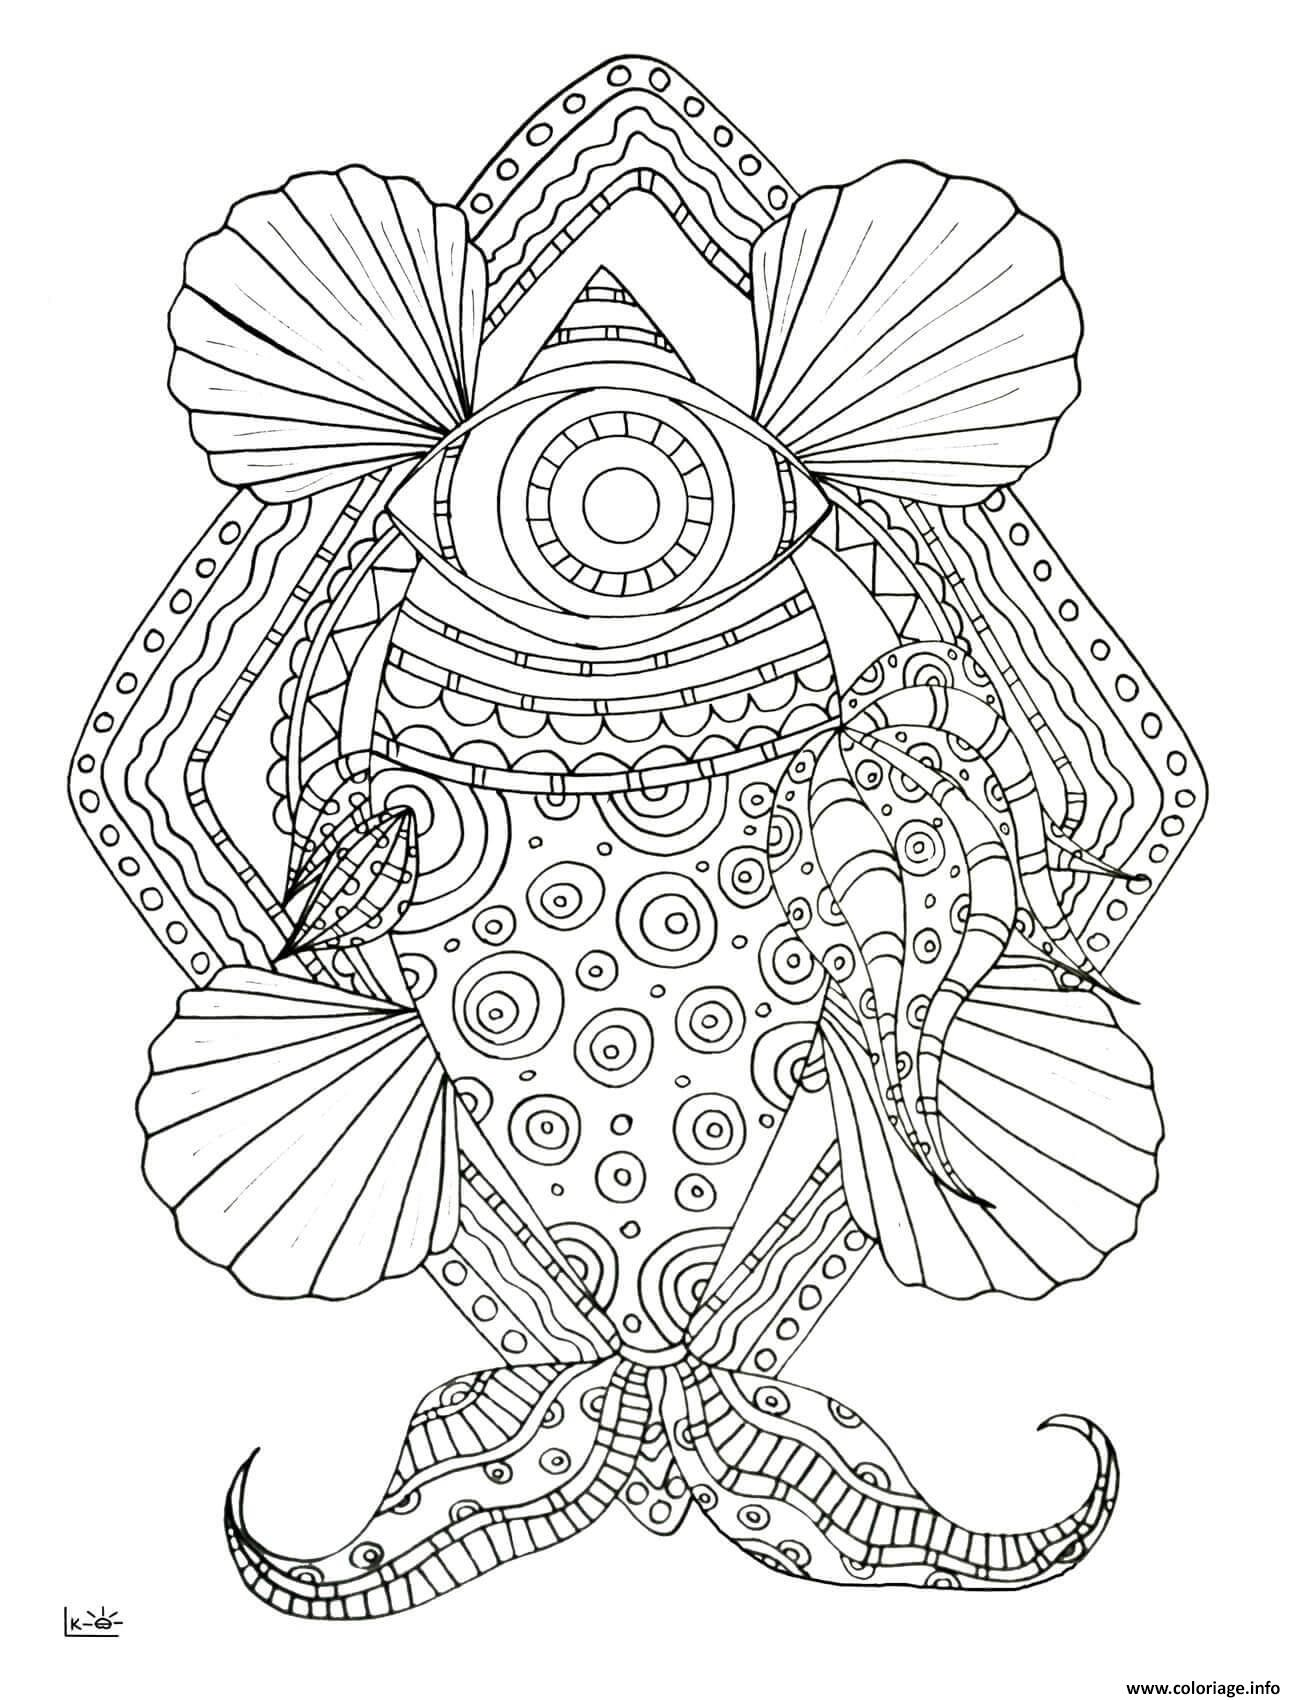 Coloriage Fish With Tribal Pattern Adulte Dessin à Imprimer